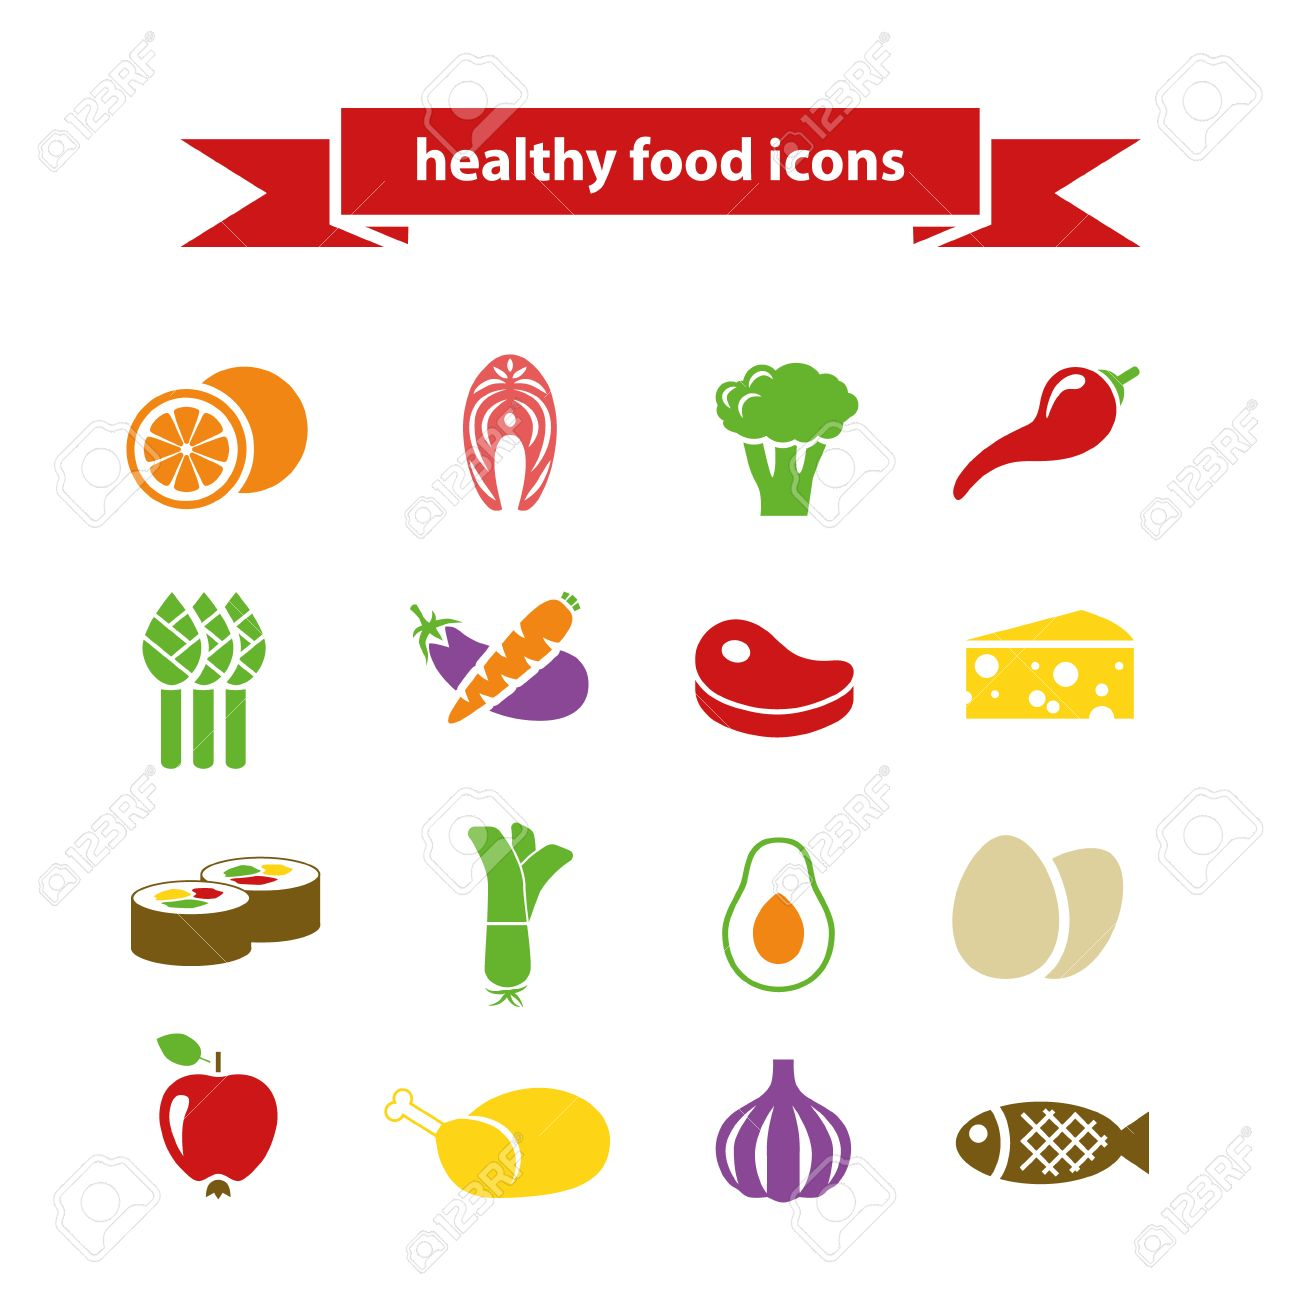 healthy food icons - 31780519